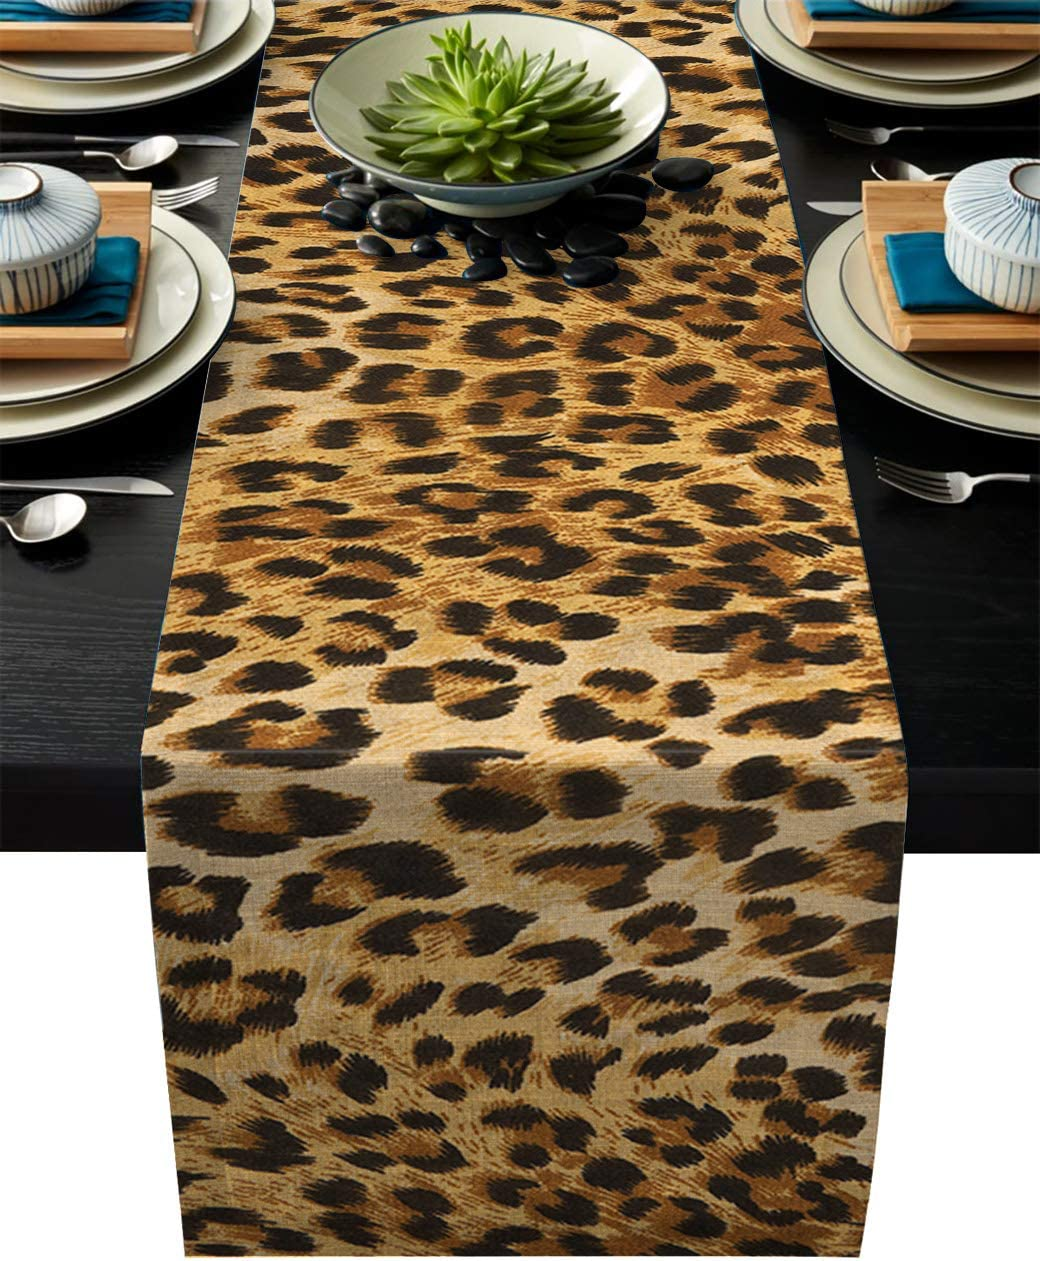 11-Inch by 6-Feet 1 Beistle 57848 Printed Leopard Print Table Runner